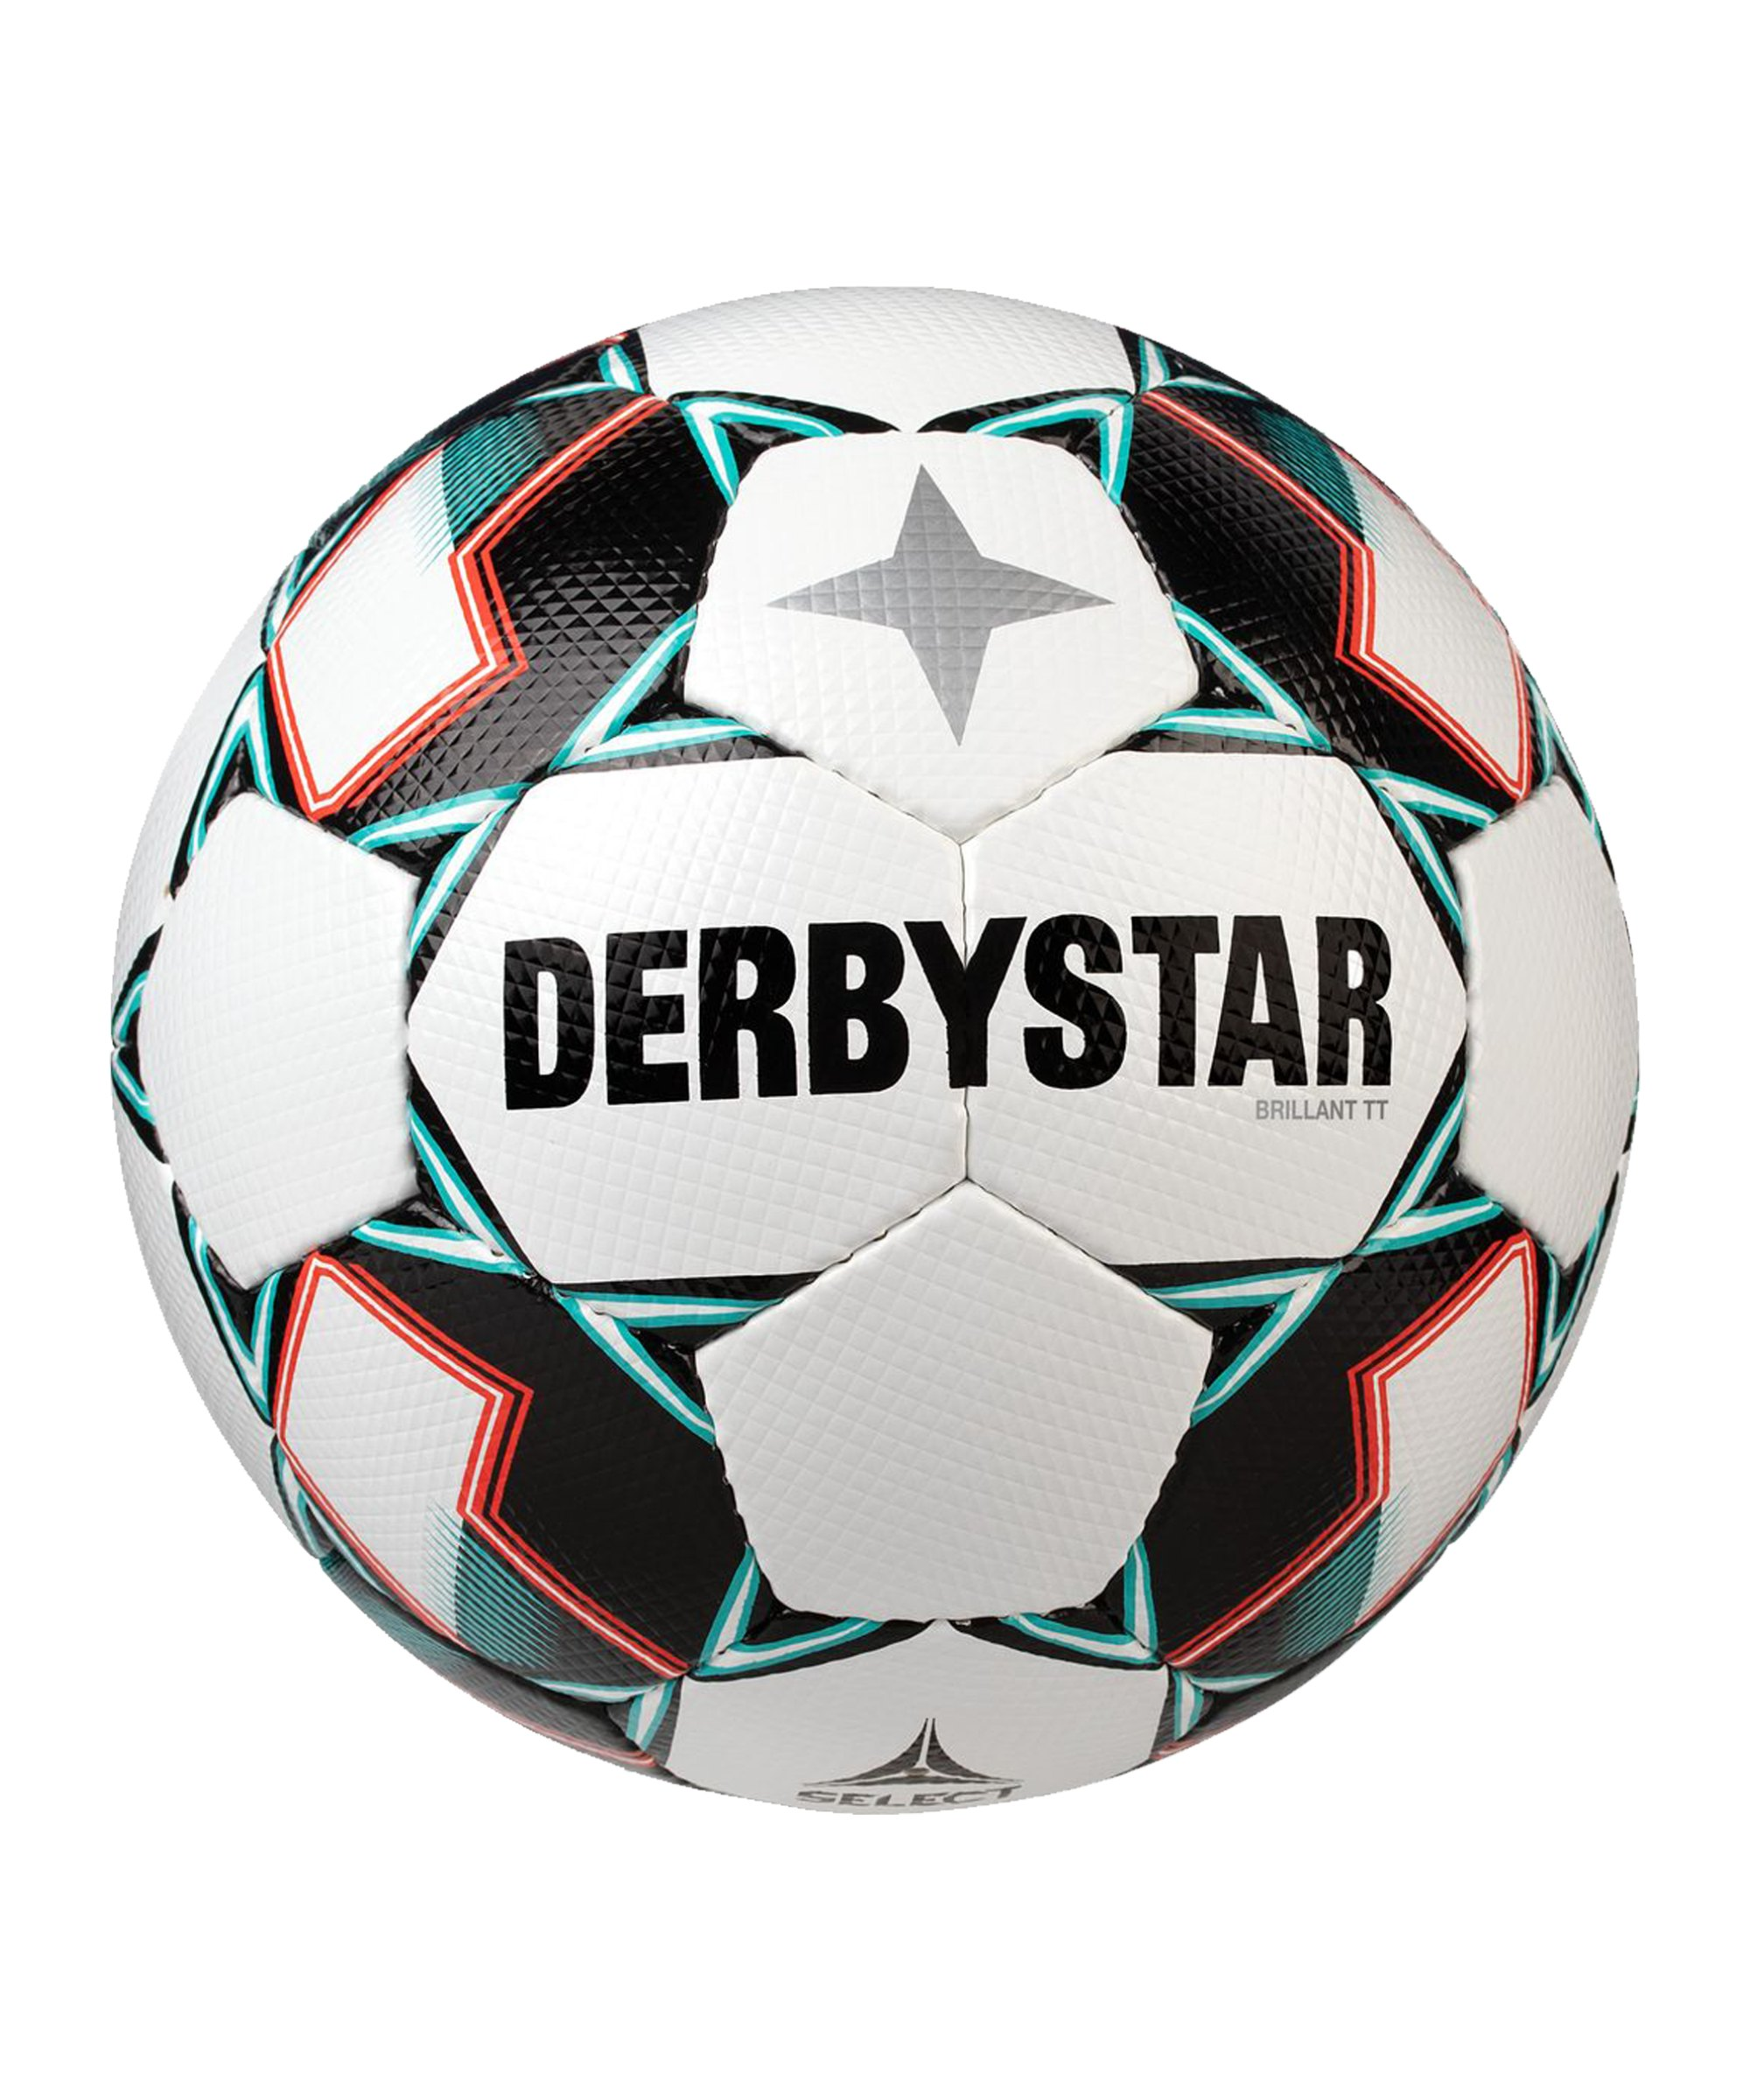 Derbystar Brilliant TT V20 Trainingsball F142 - weiss